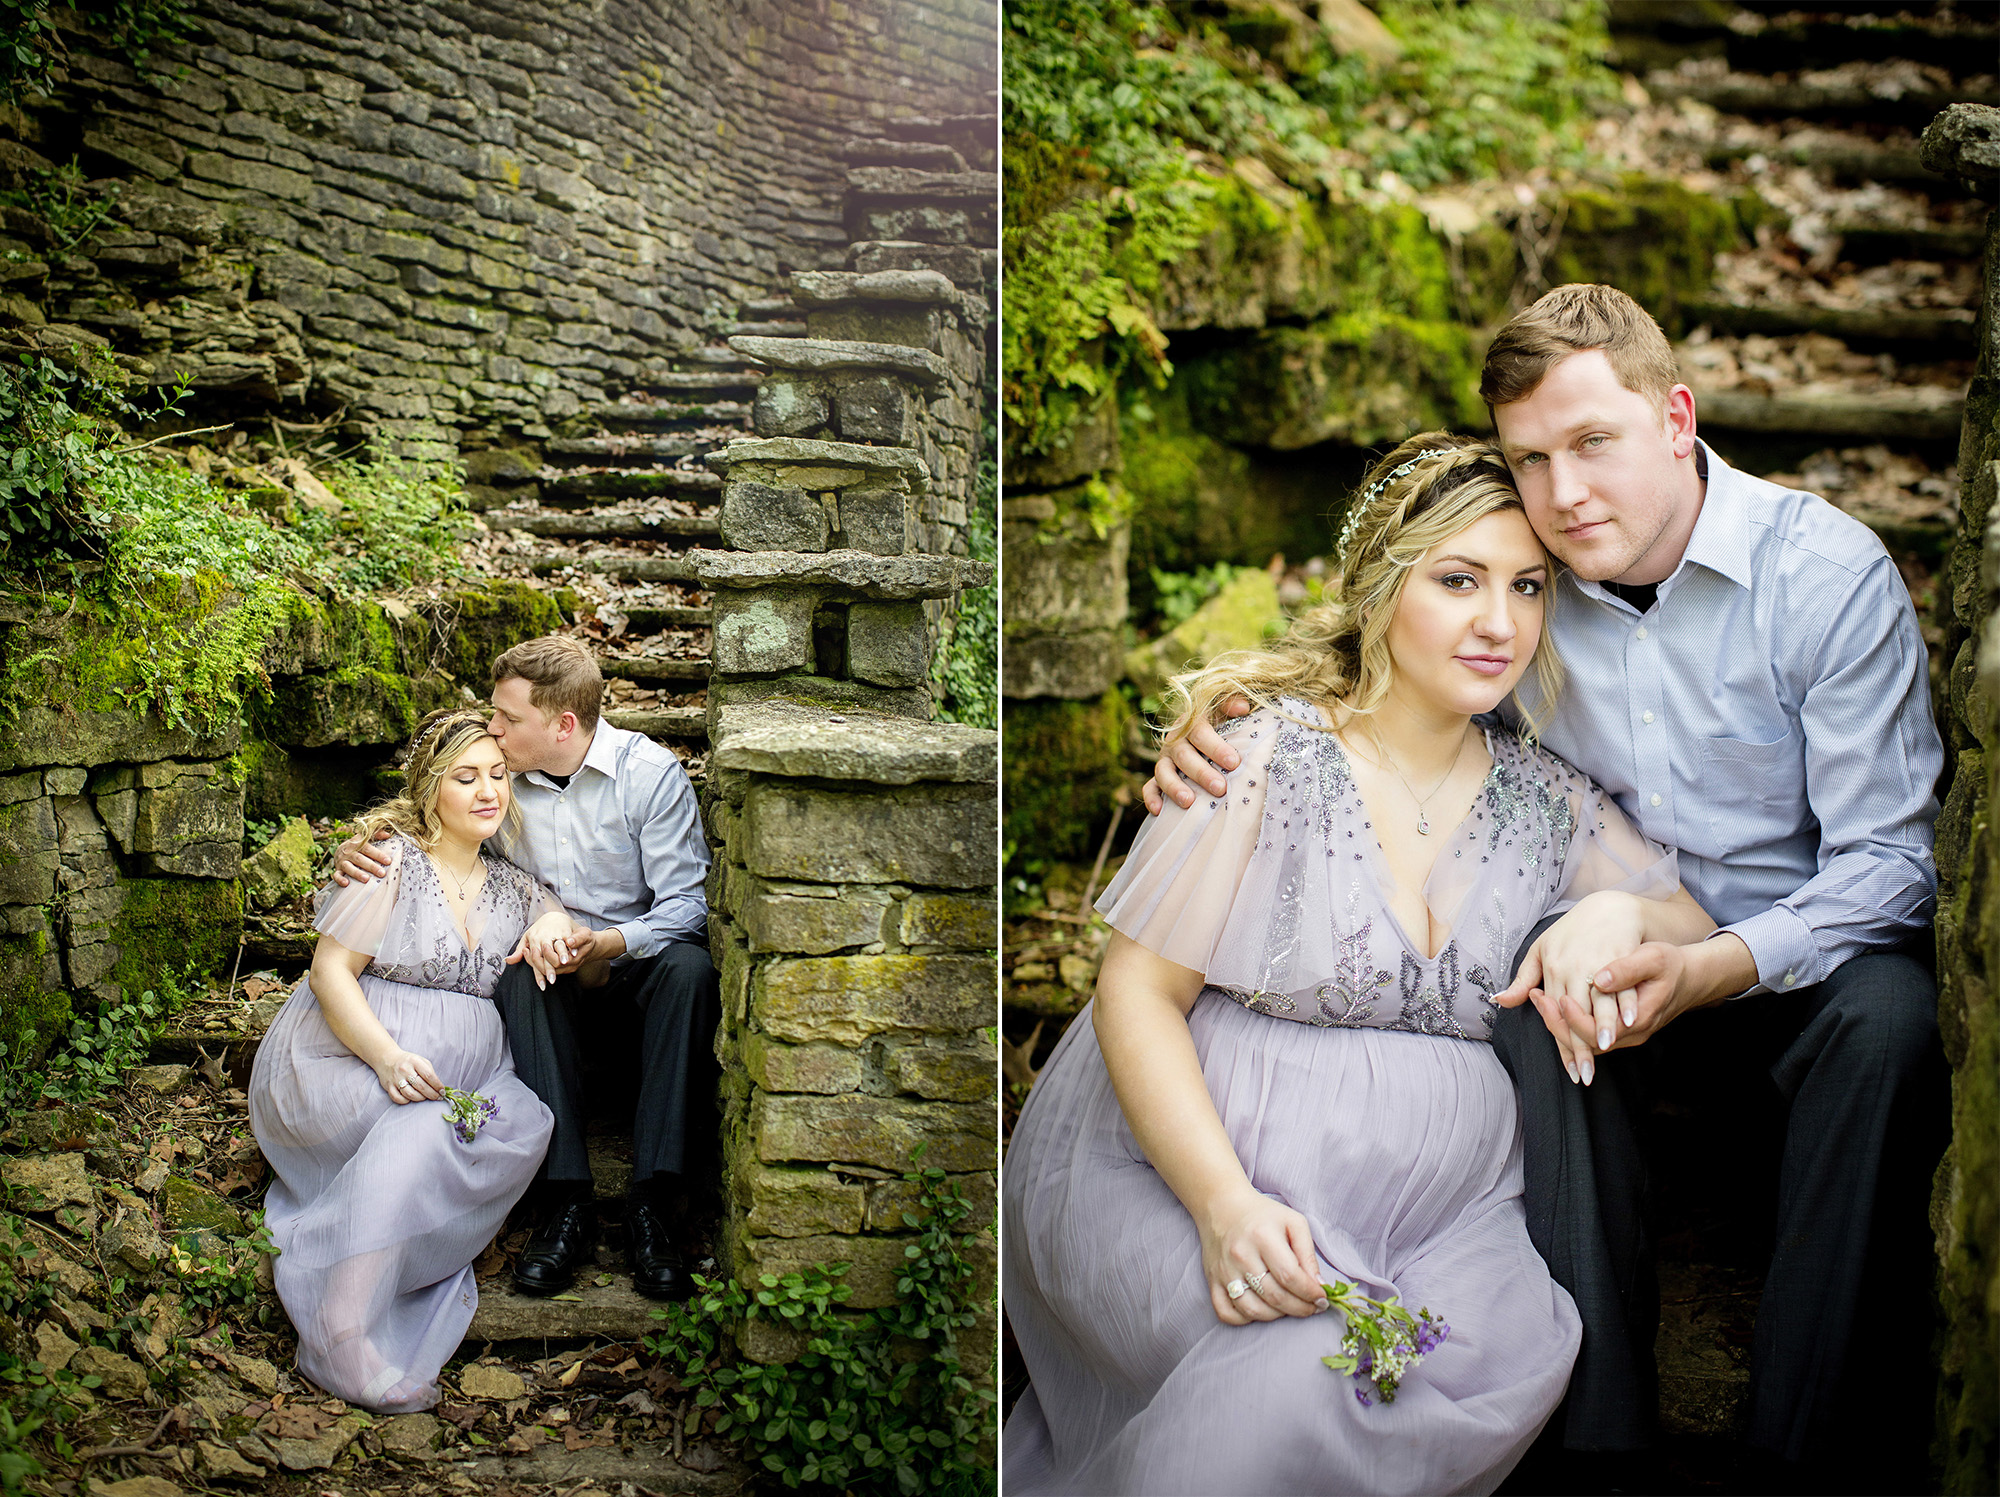 Seriously_Sabrina_Photography_Lexington_Kentucky_Fairytale_Maternity_Portraits_Horse_Park_Reynolds_23.jpg